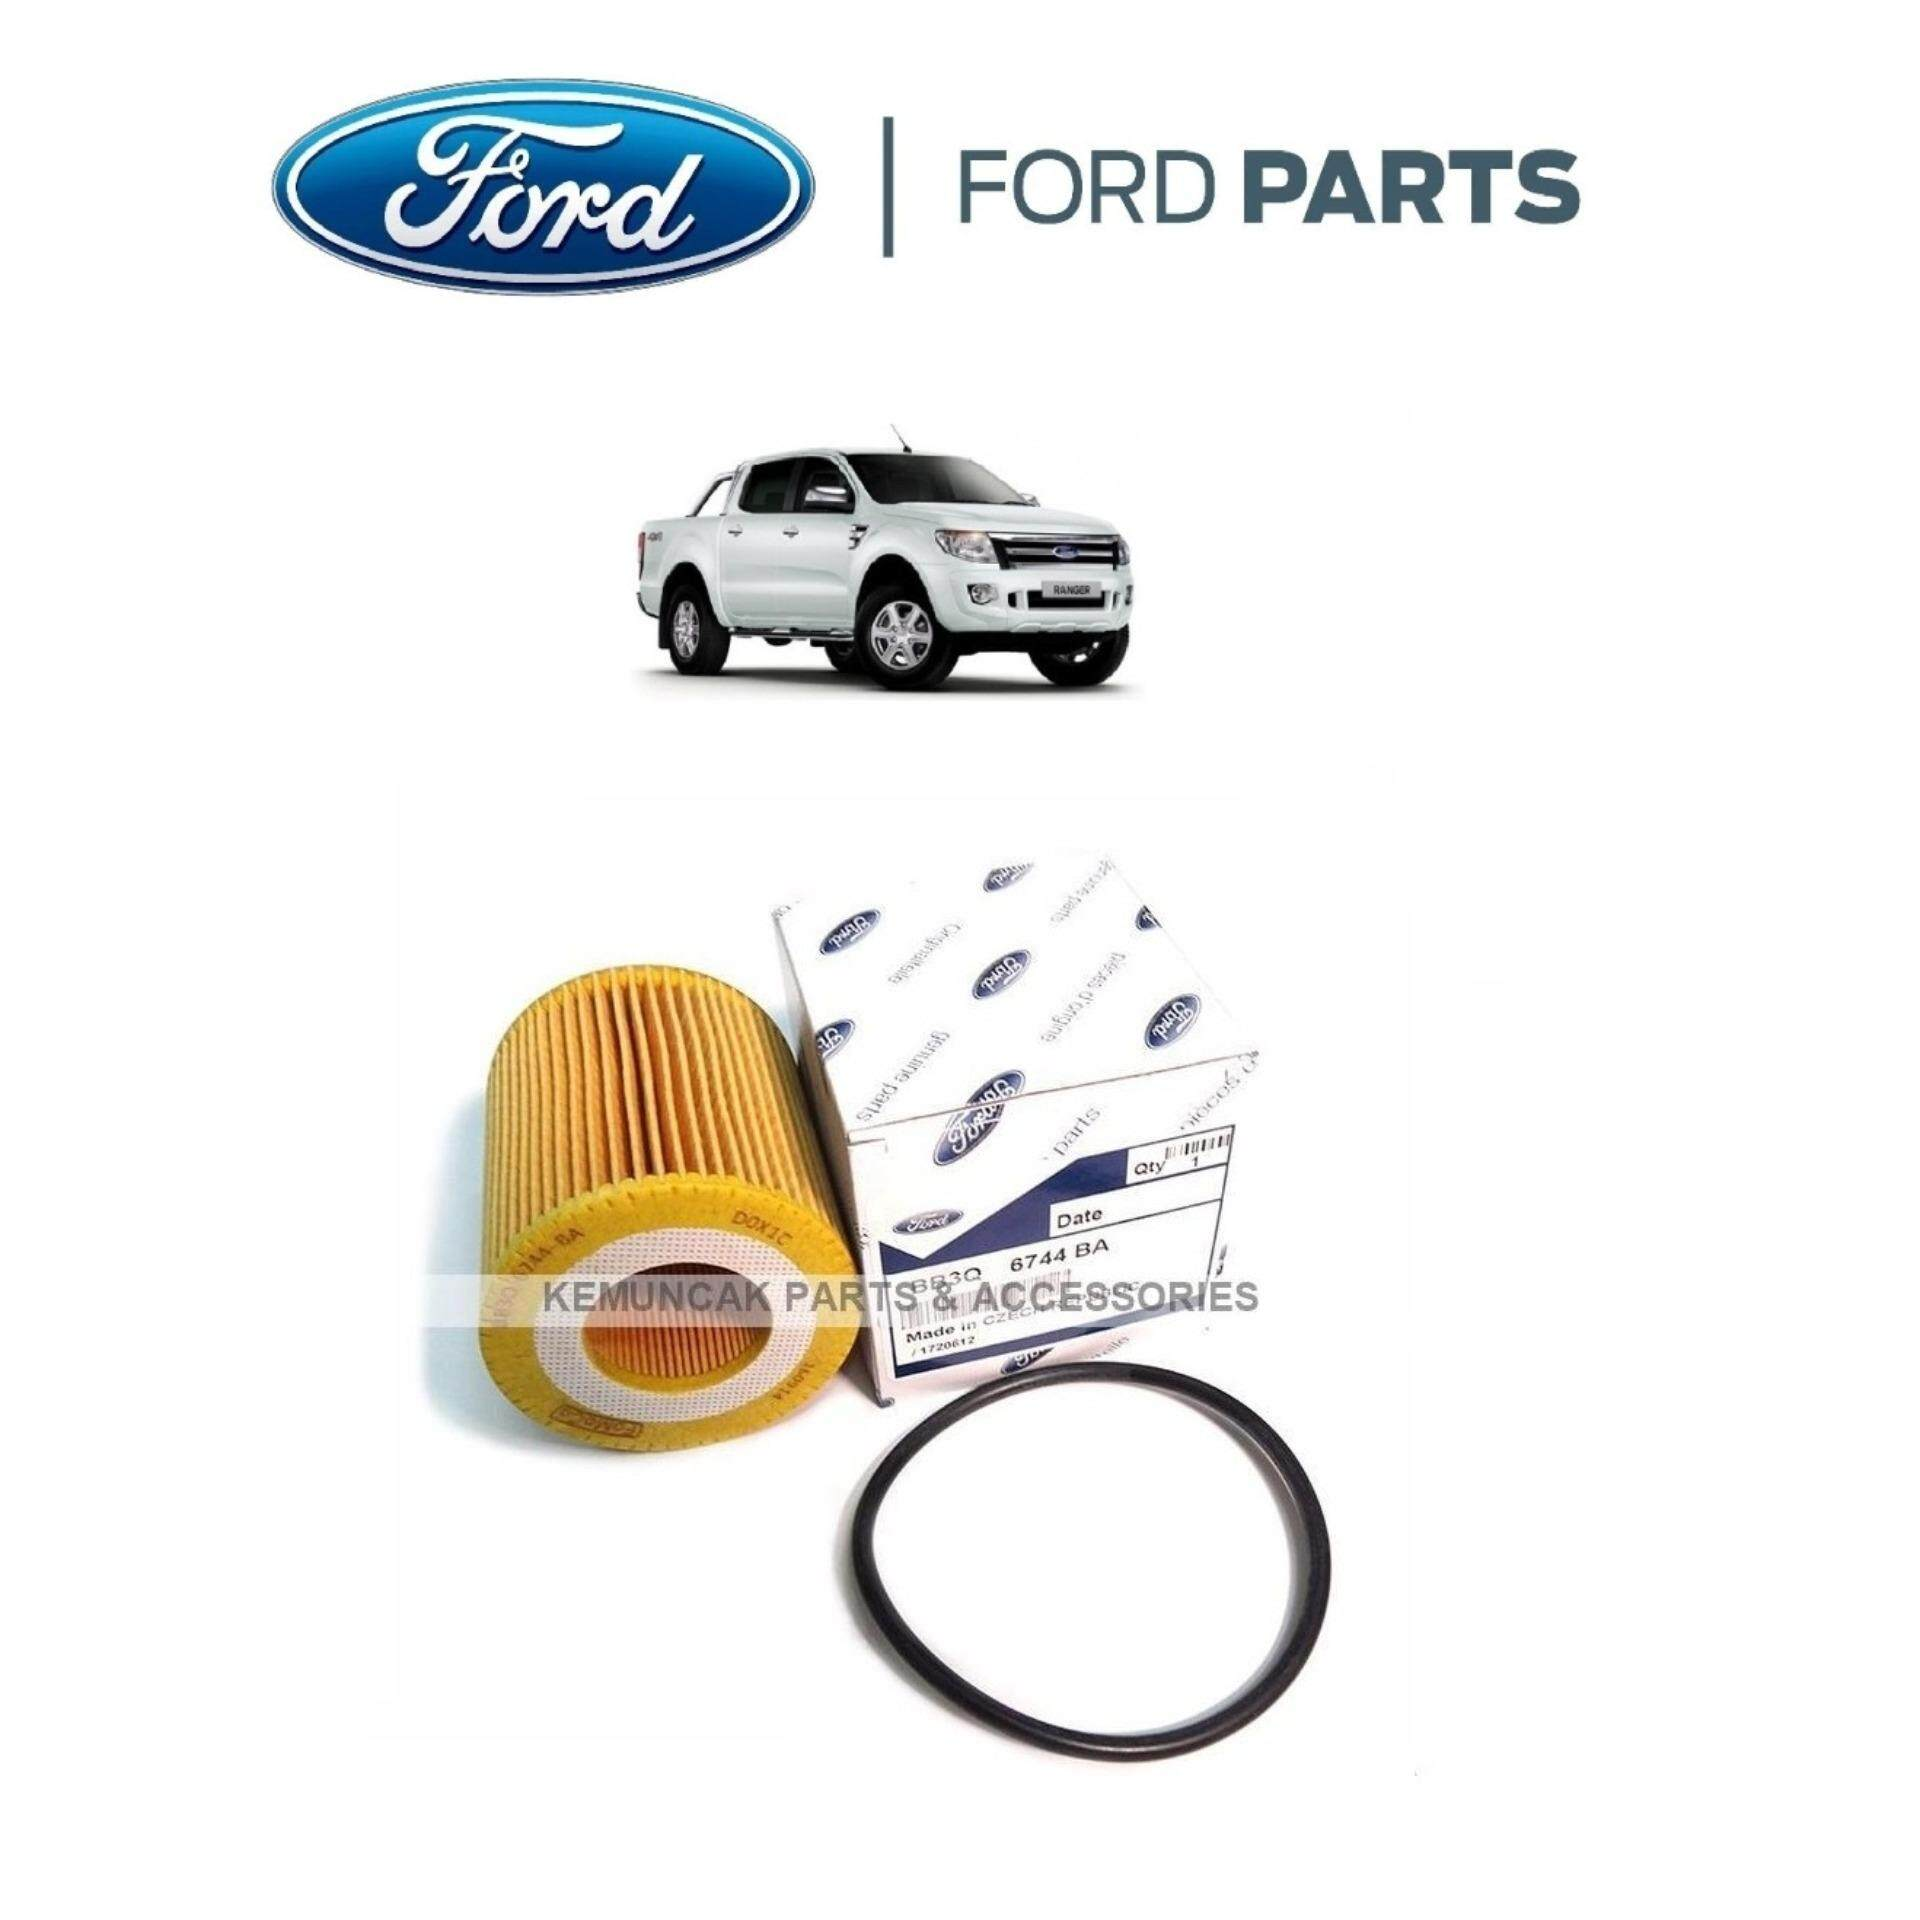 Ford Auto Parts Spares Price In Malaysia Best 2012 Fiesta Fuel Filter Genuine Ranger 22 32 T6 Tdci Engine Oil Bb3q6744ba